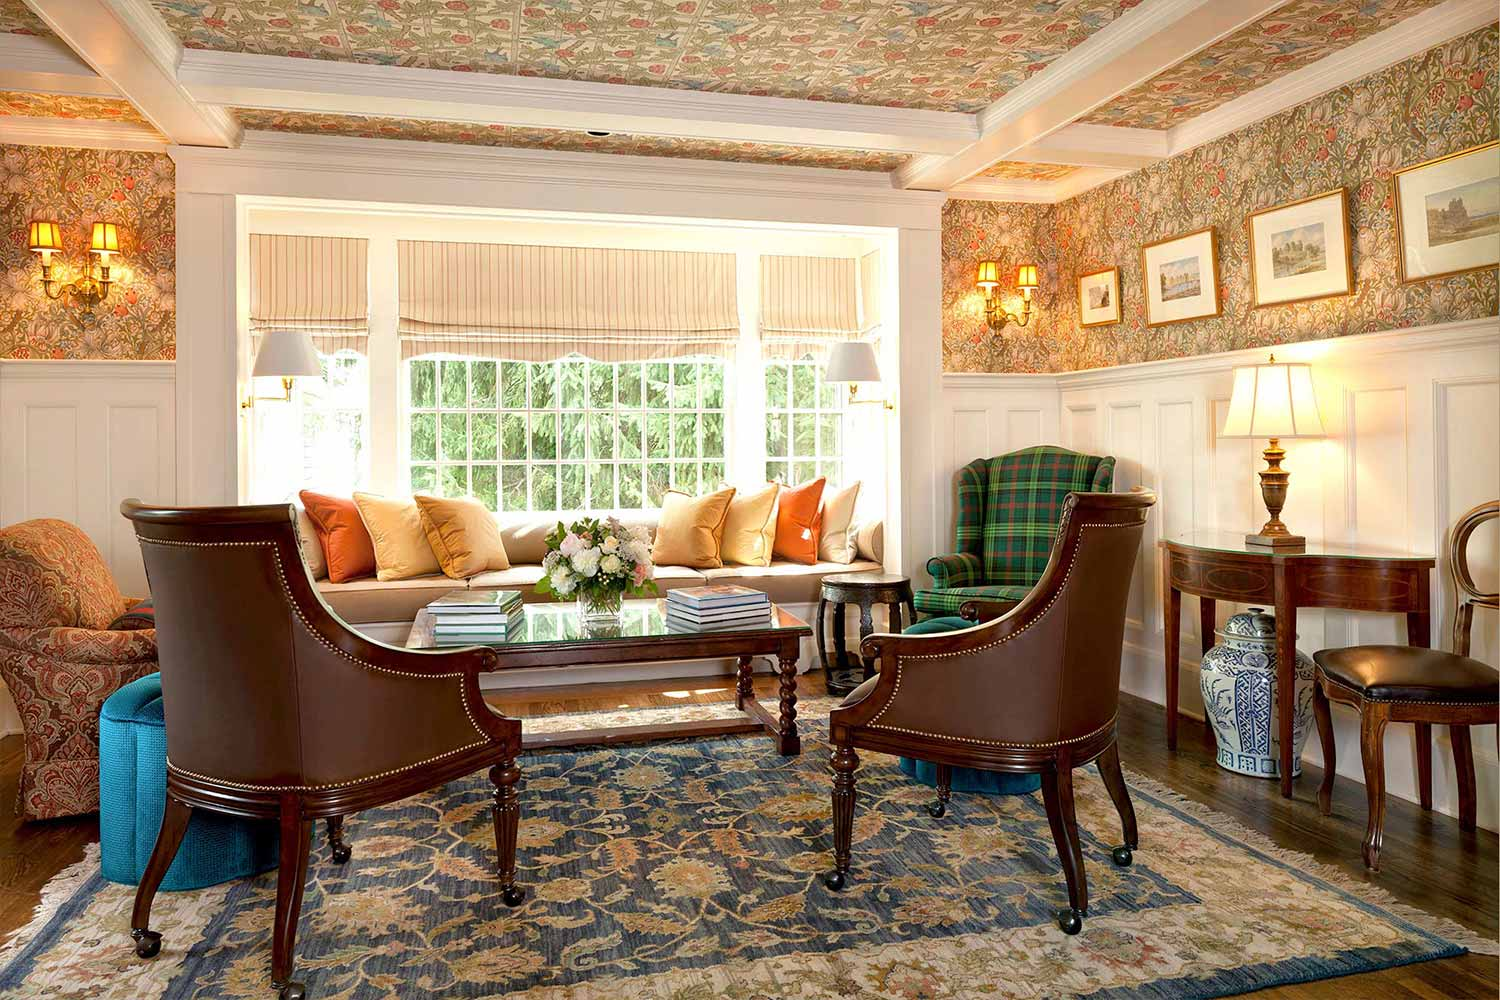 The common area living room in the Carter House with a bright bay window and antique furniture.